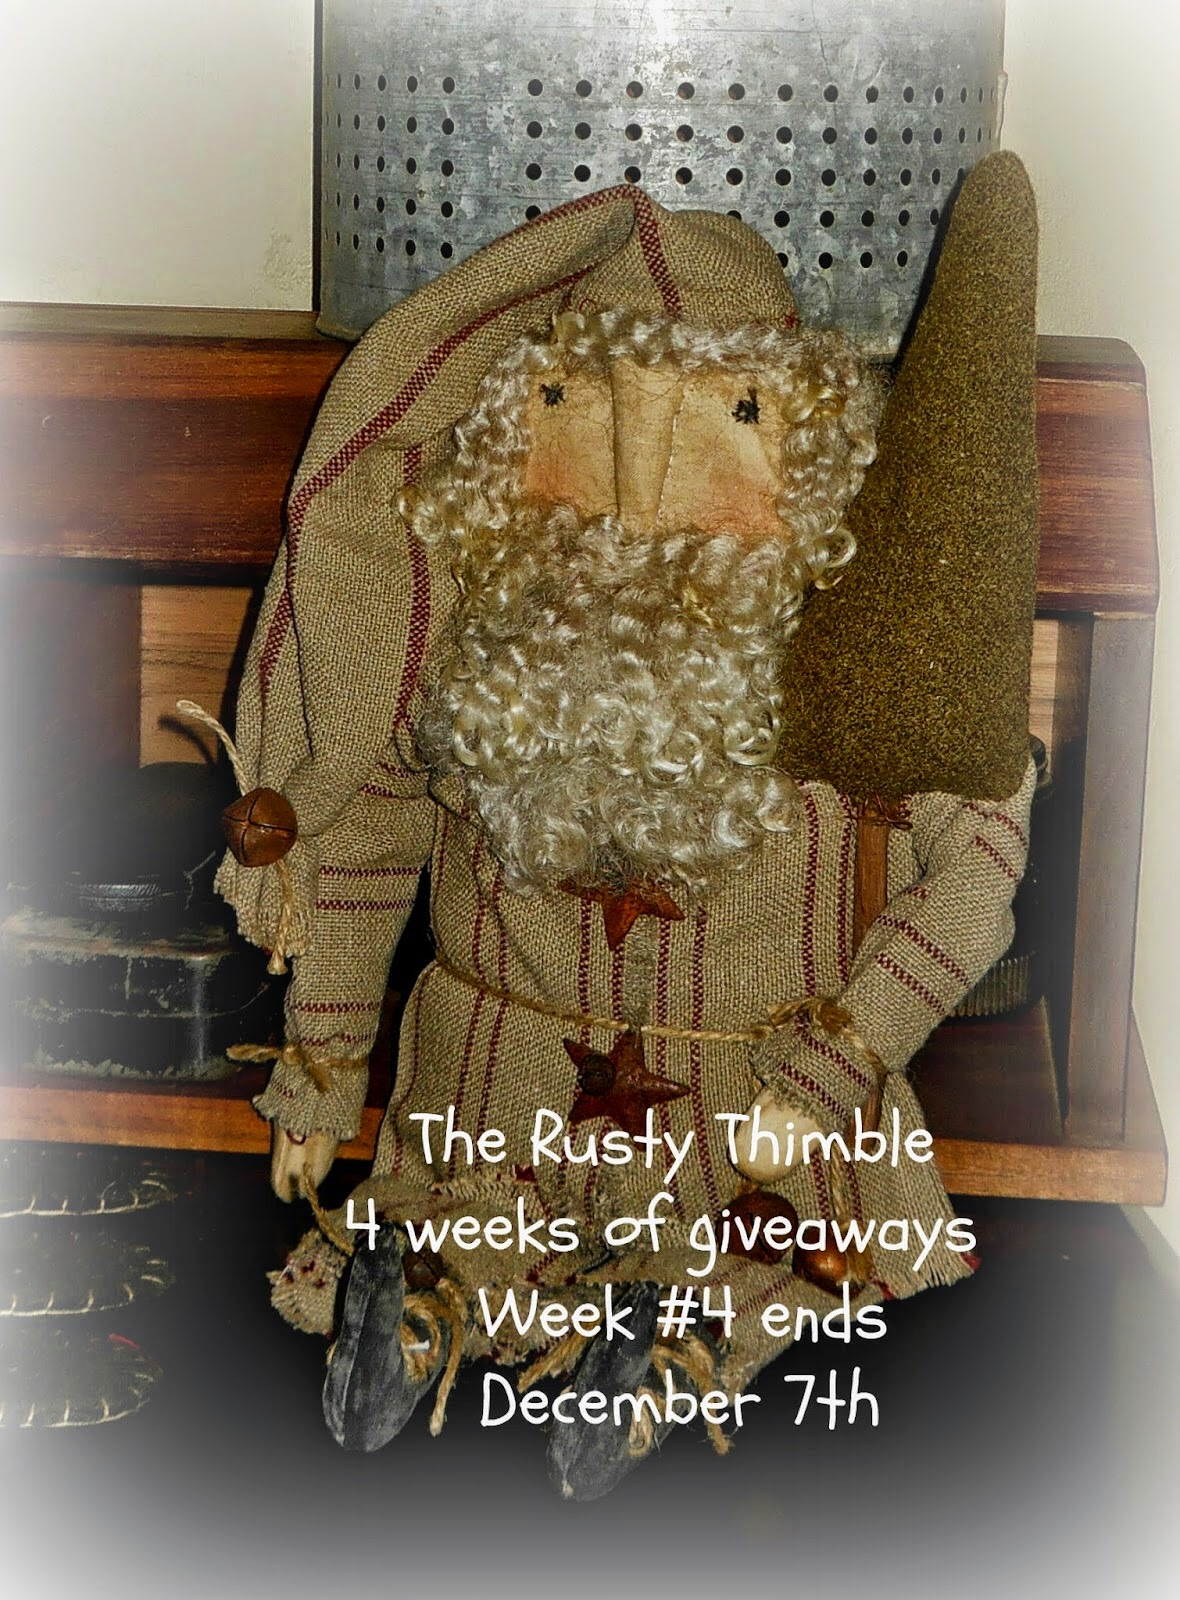 The Rusty Thimble's Giveaway